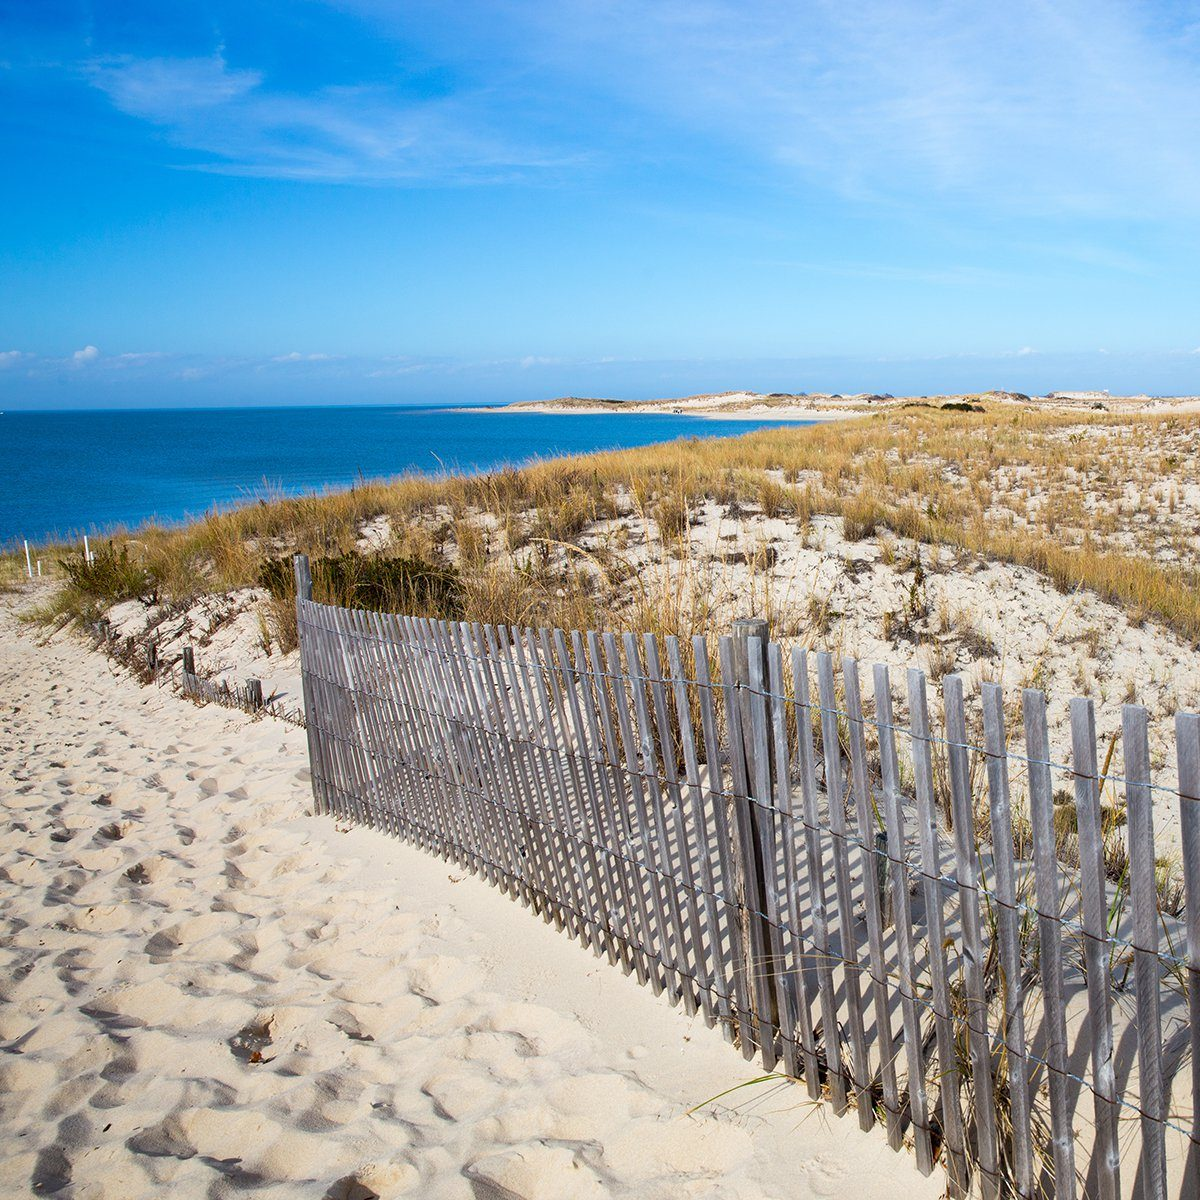 Peaceful Atlantic Ocean seashore view at Cape Henlopen in the State of Delaware a popular destination for relaxation and history.